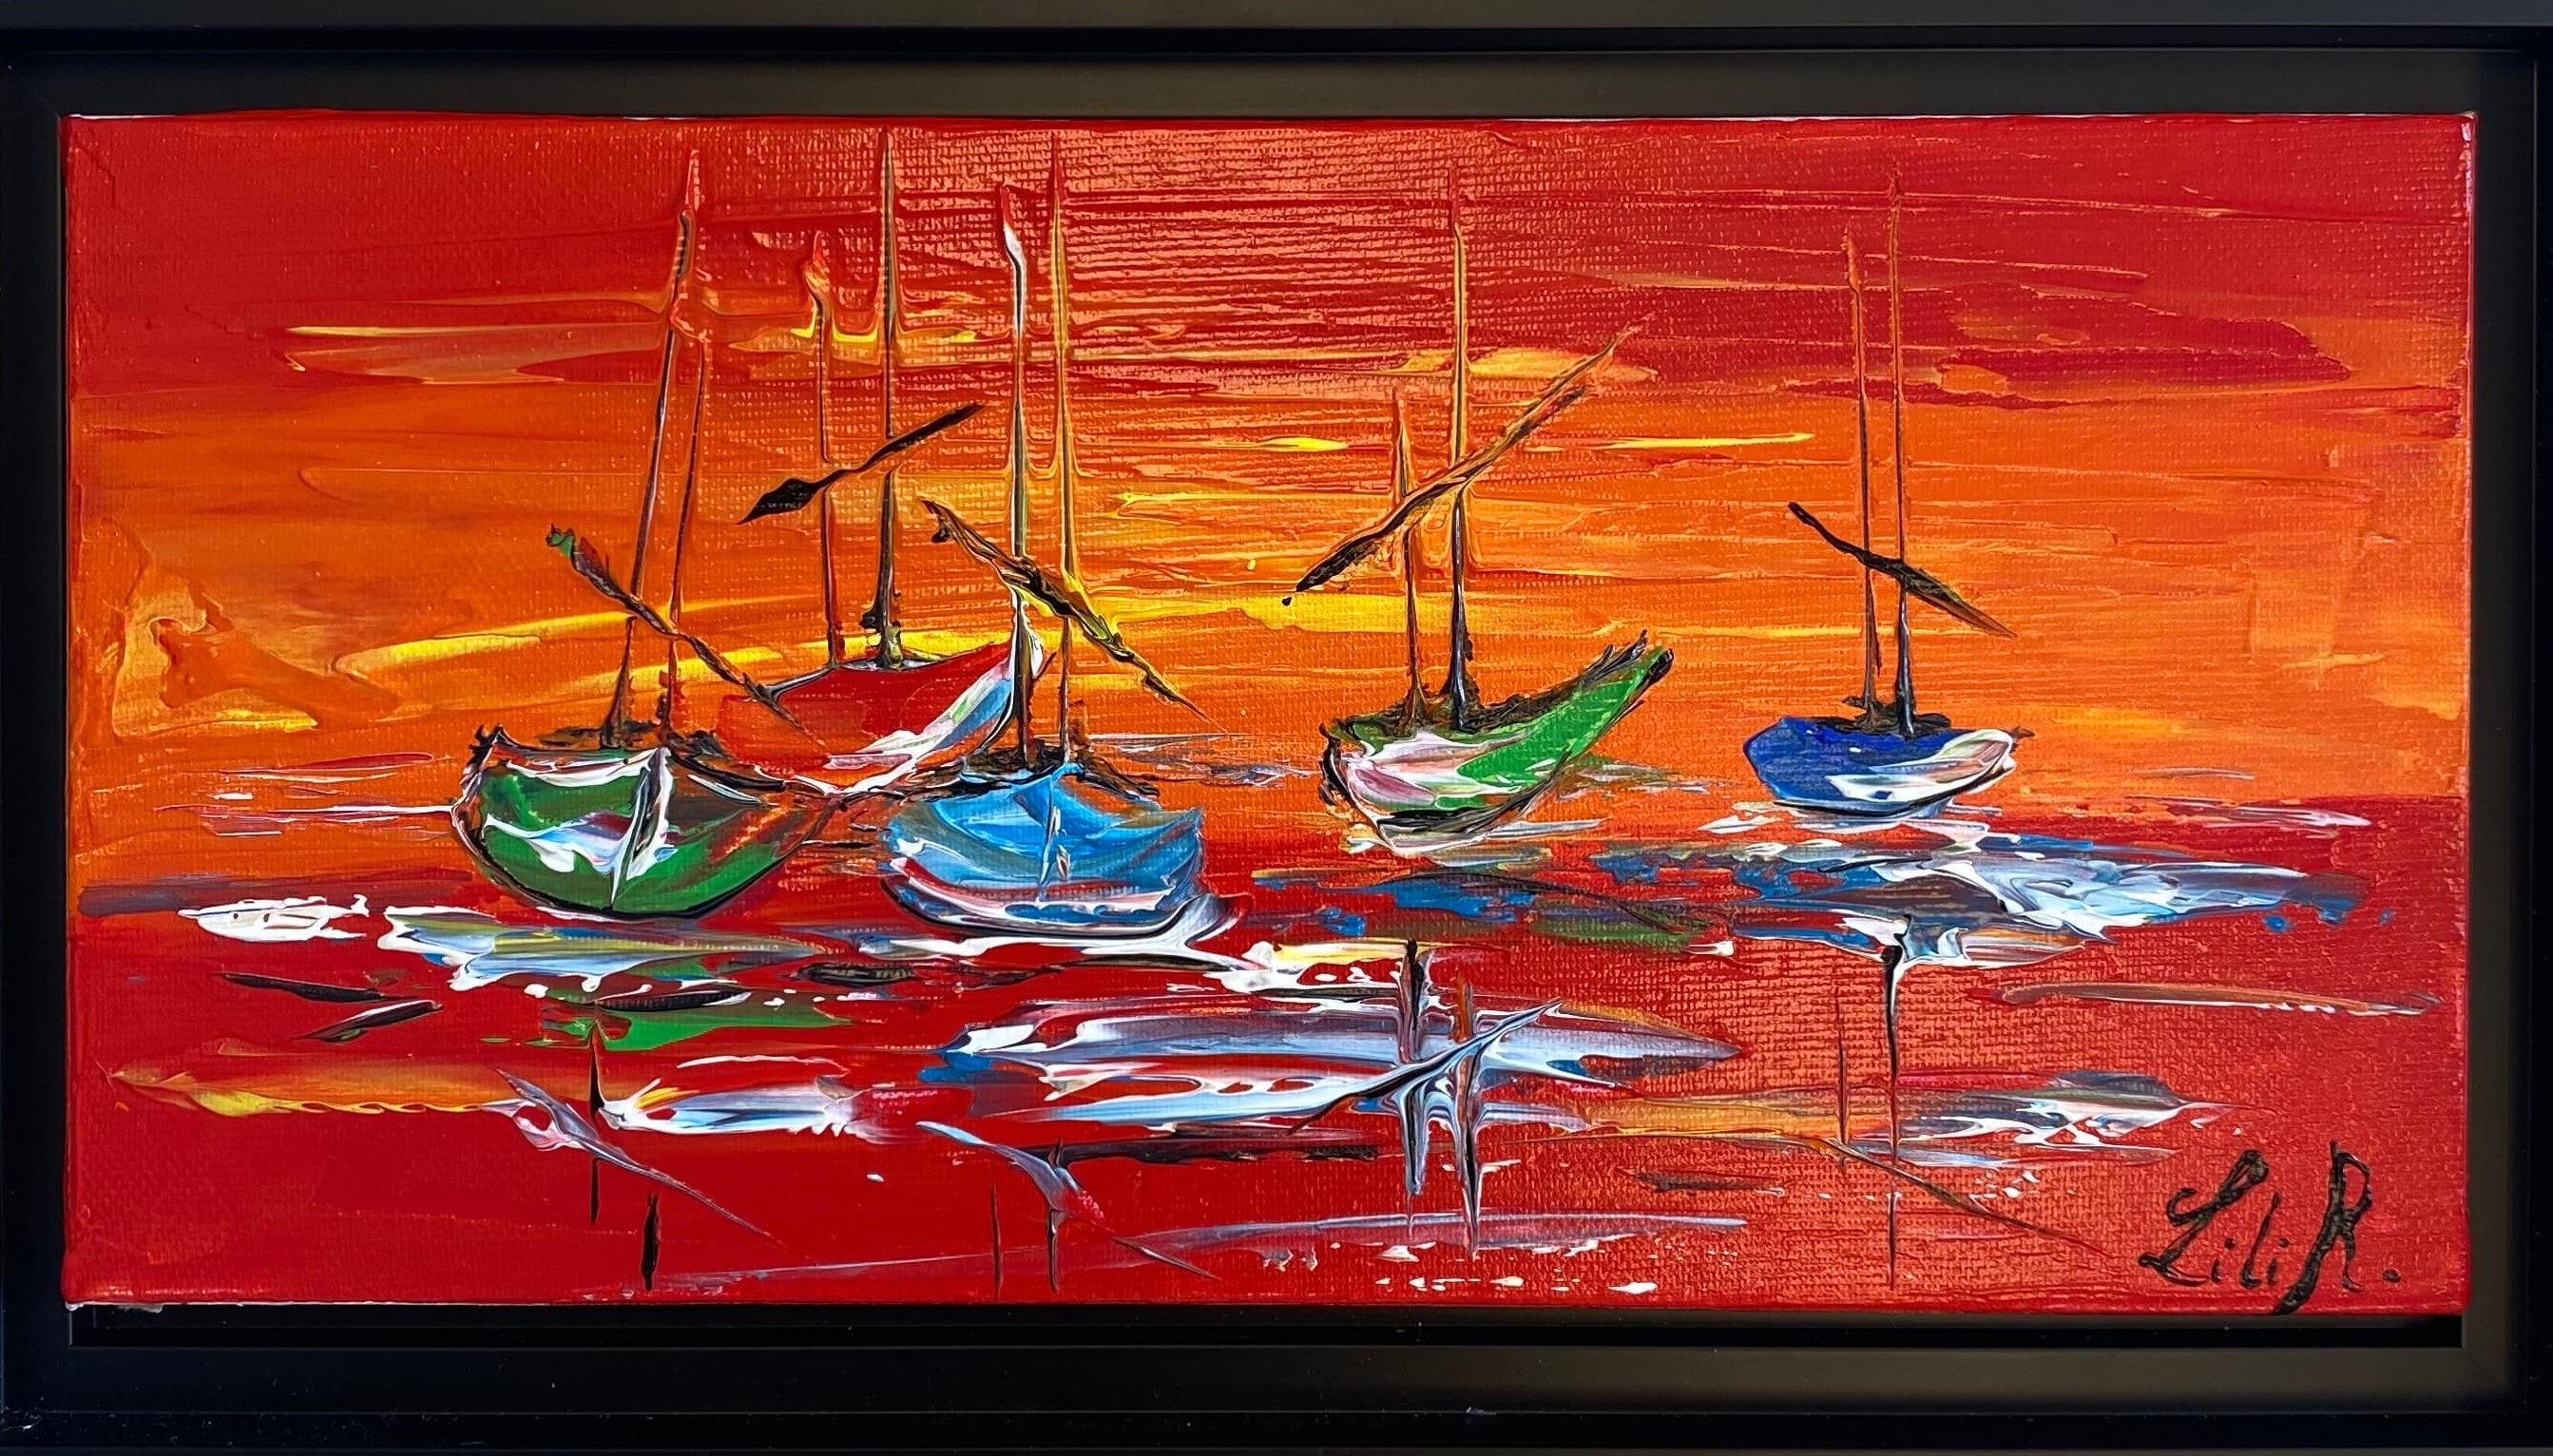 tableau-abstrait-marine-lilir-collection-rouge-severine-richer-galaerie-port-guillaume-peintre-normand-houlgate-dives-sur-mer-cabourg-.jpg